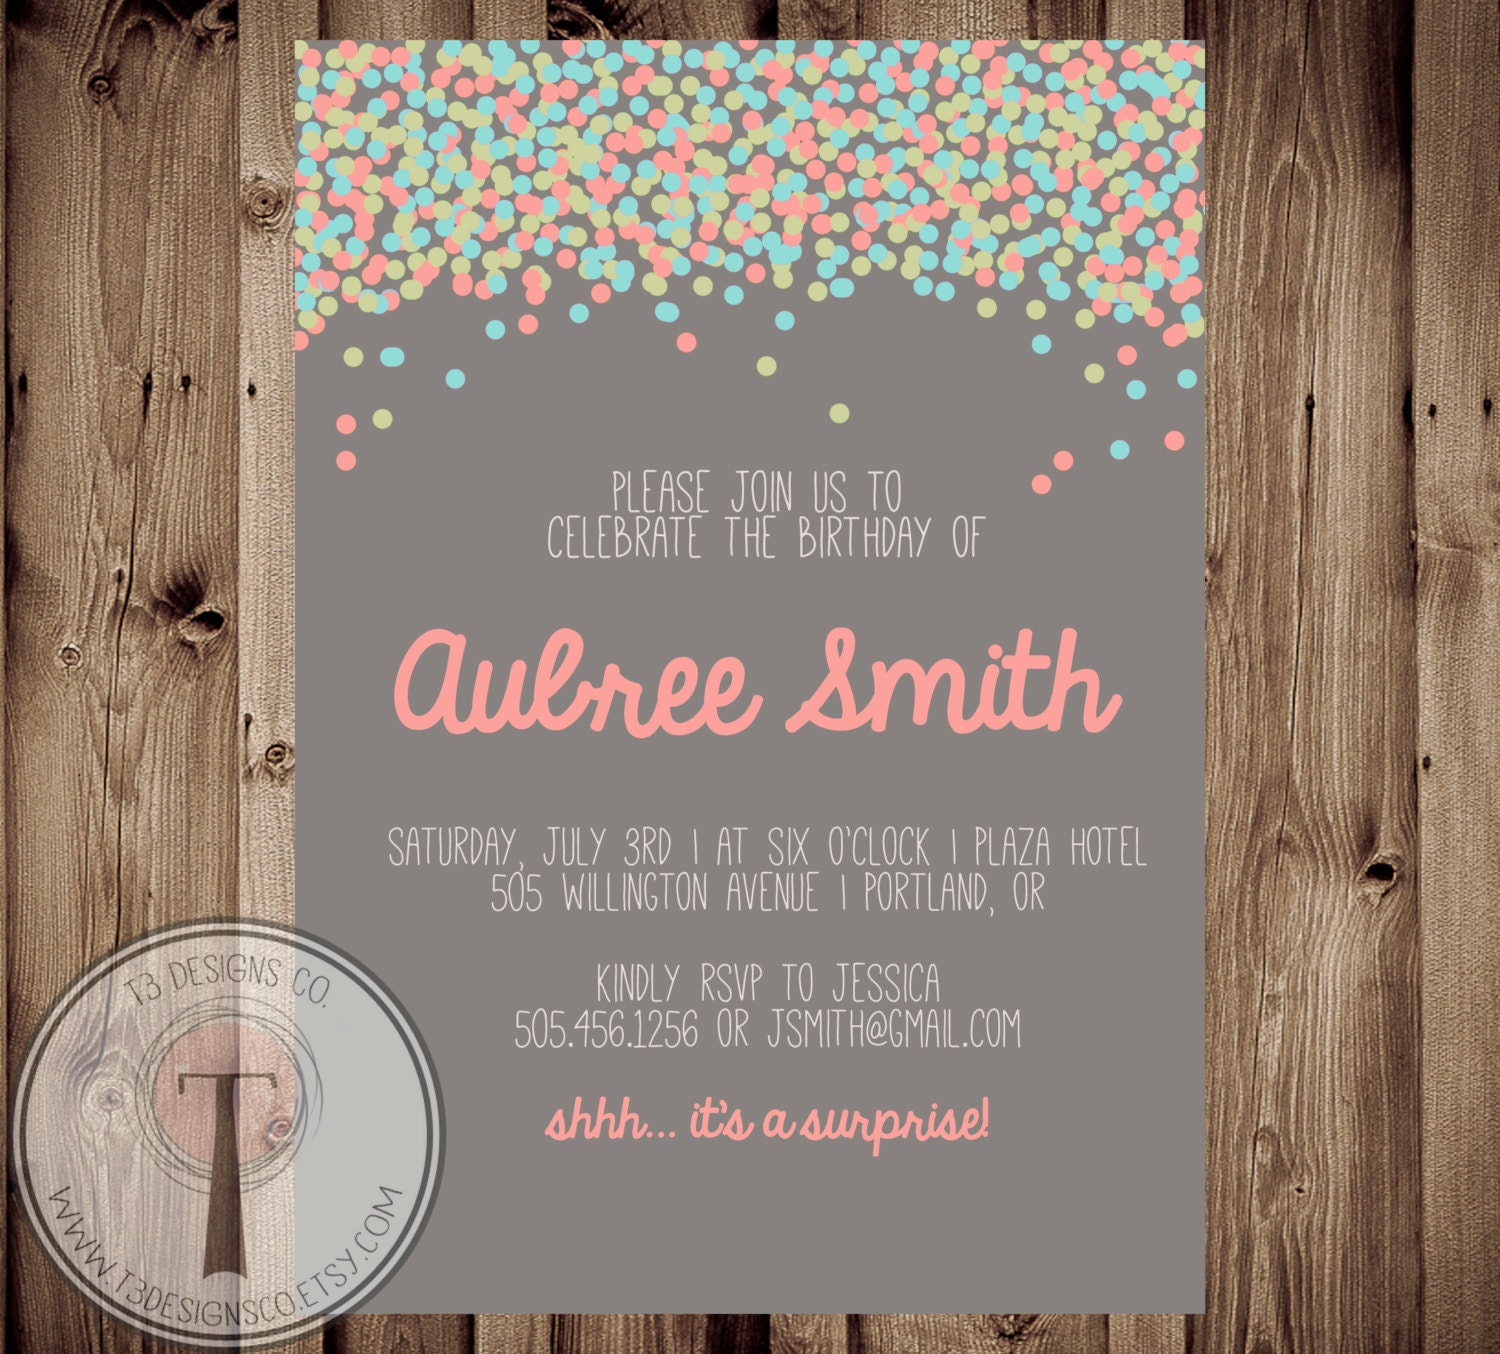 Confetti birthday invitation bright birthday invitation modern confetti birthday invitation bright birthday invitation modern adult birthday 30th birthday 40th 21st birthday party invitation 1007 filmwisefo